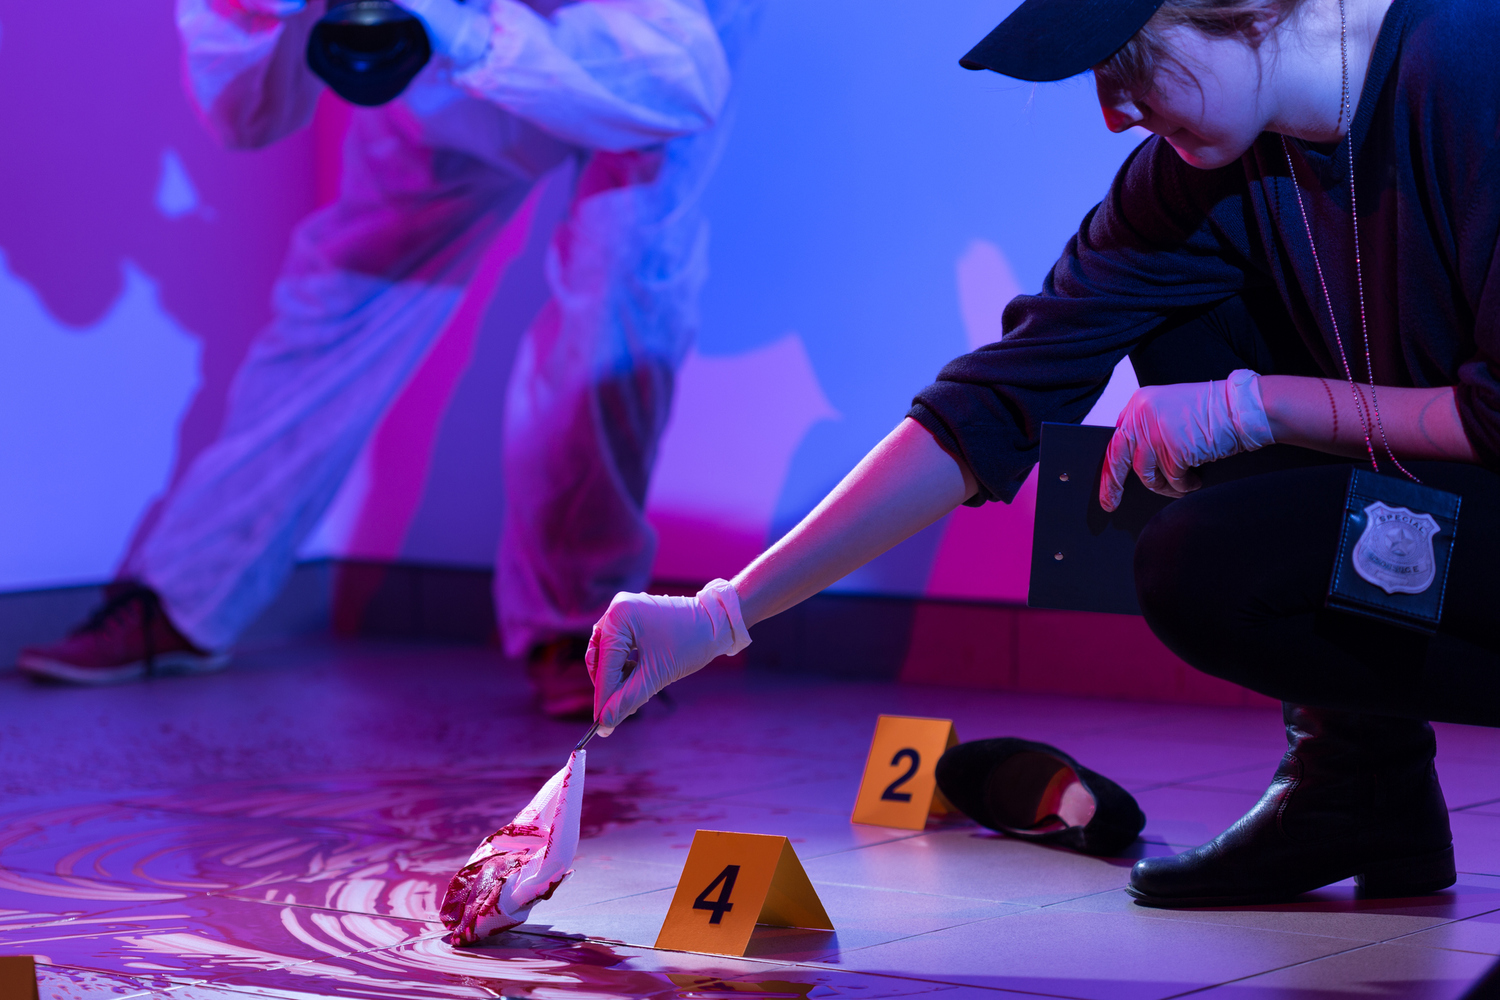 Crime Scene Photography Color & white balance